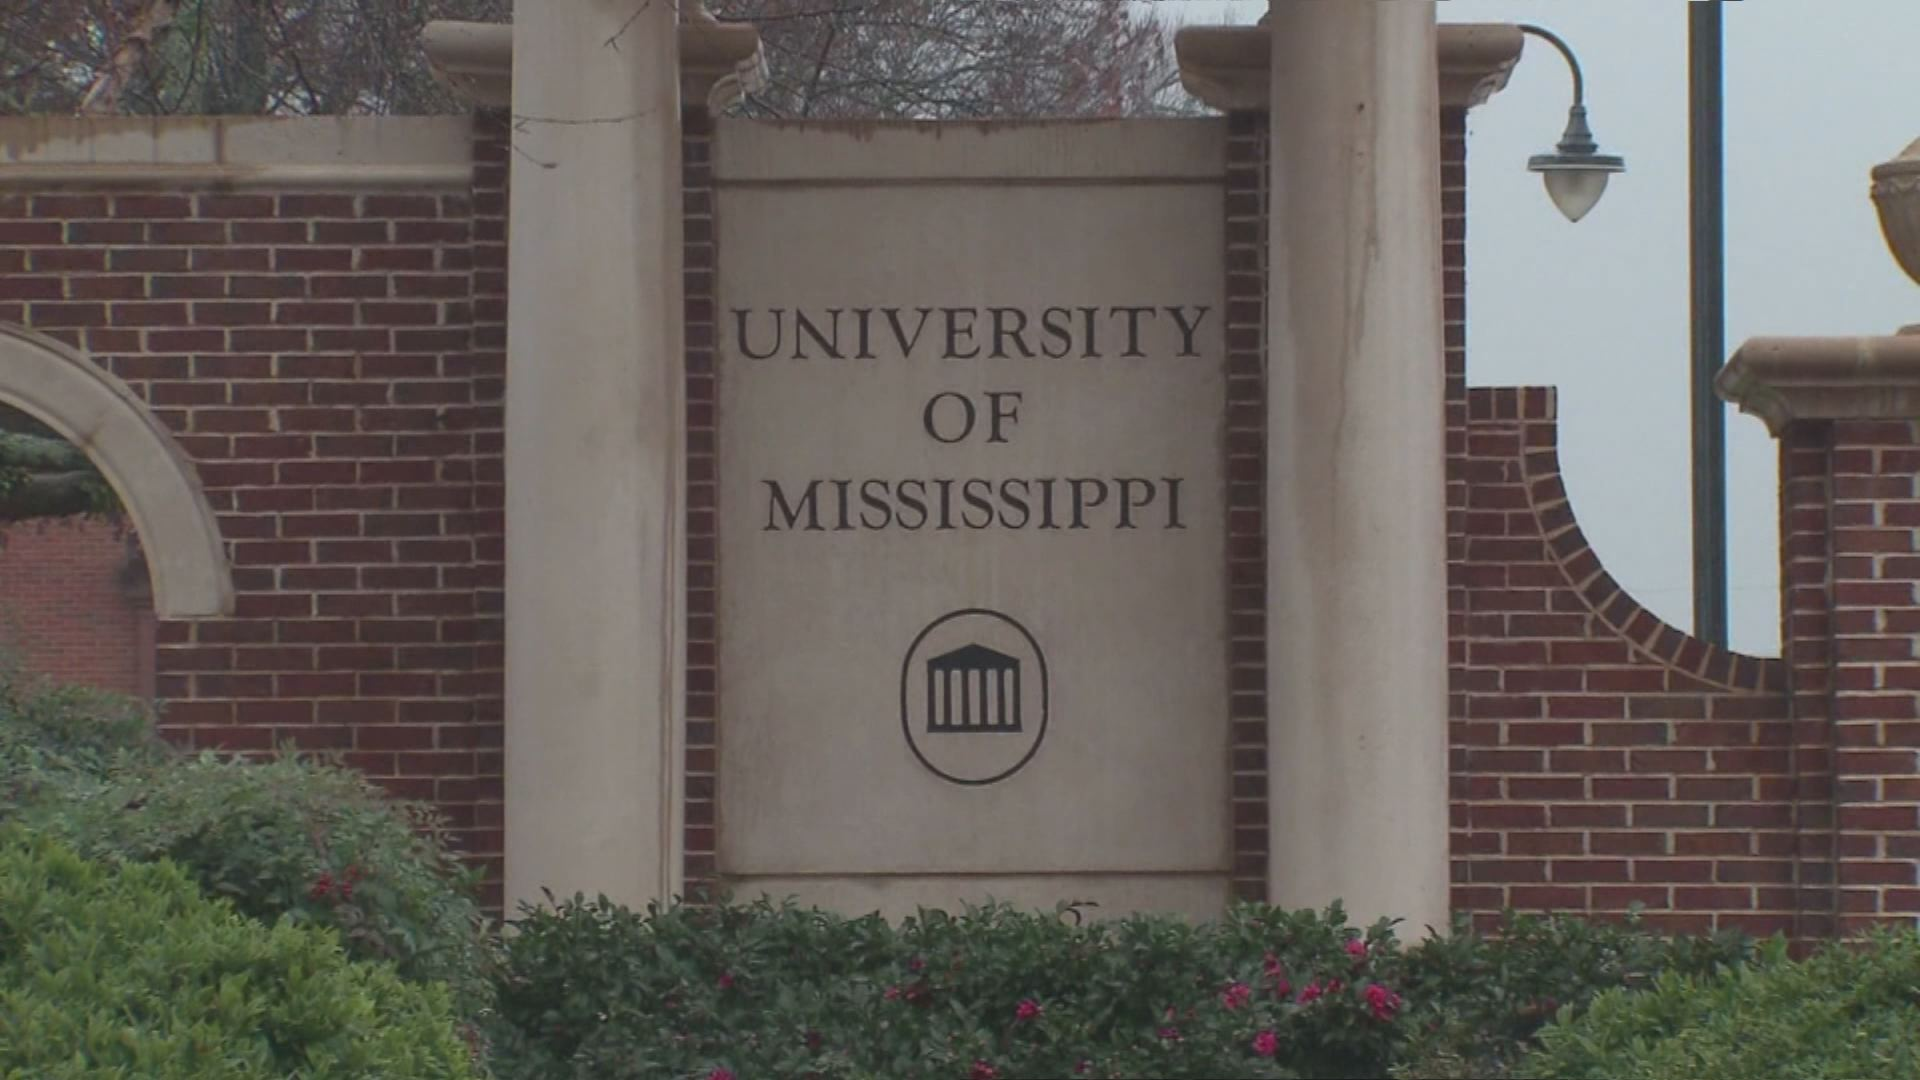 University of Mississippi_272111